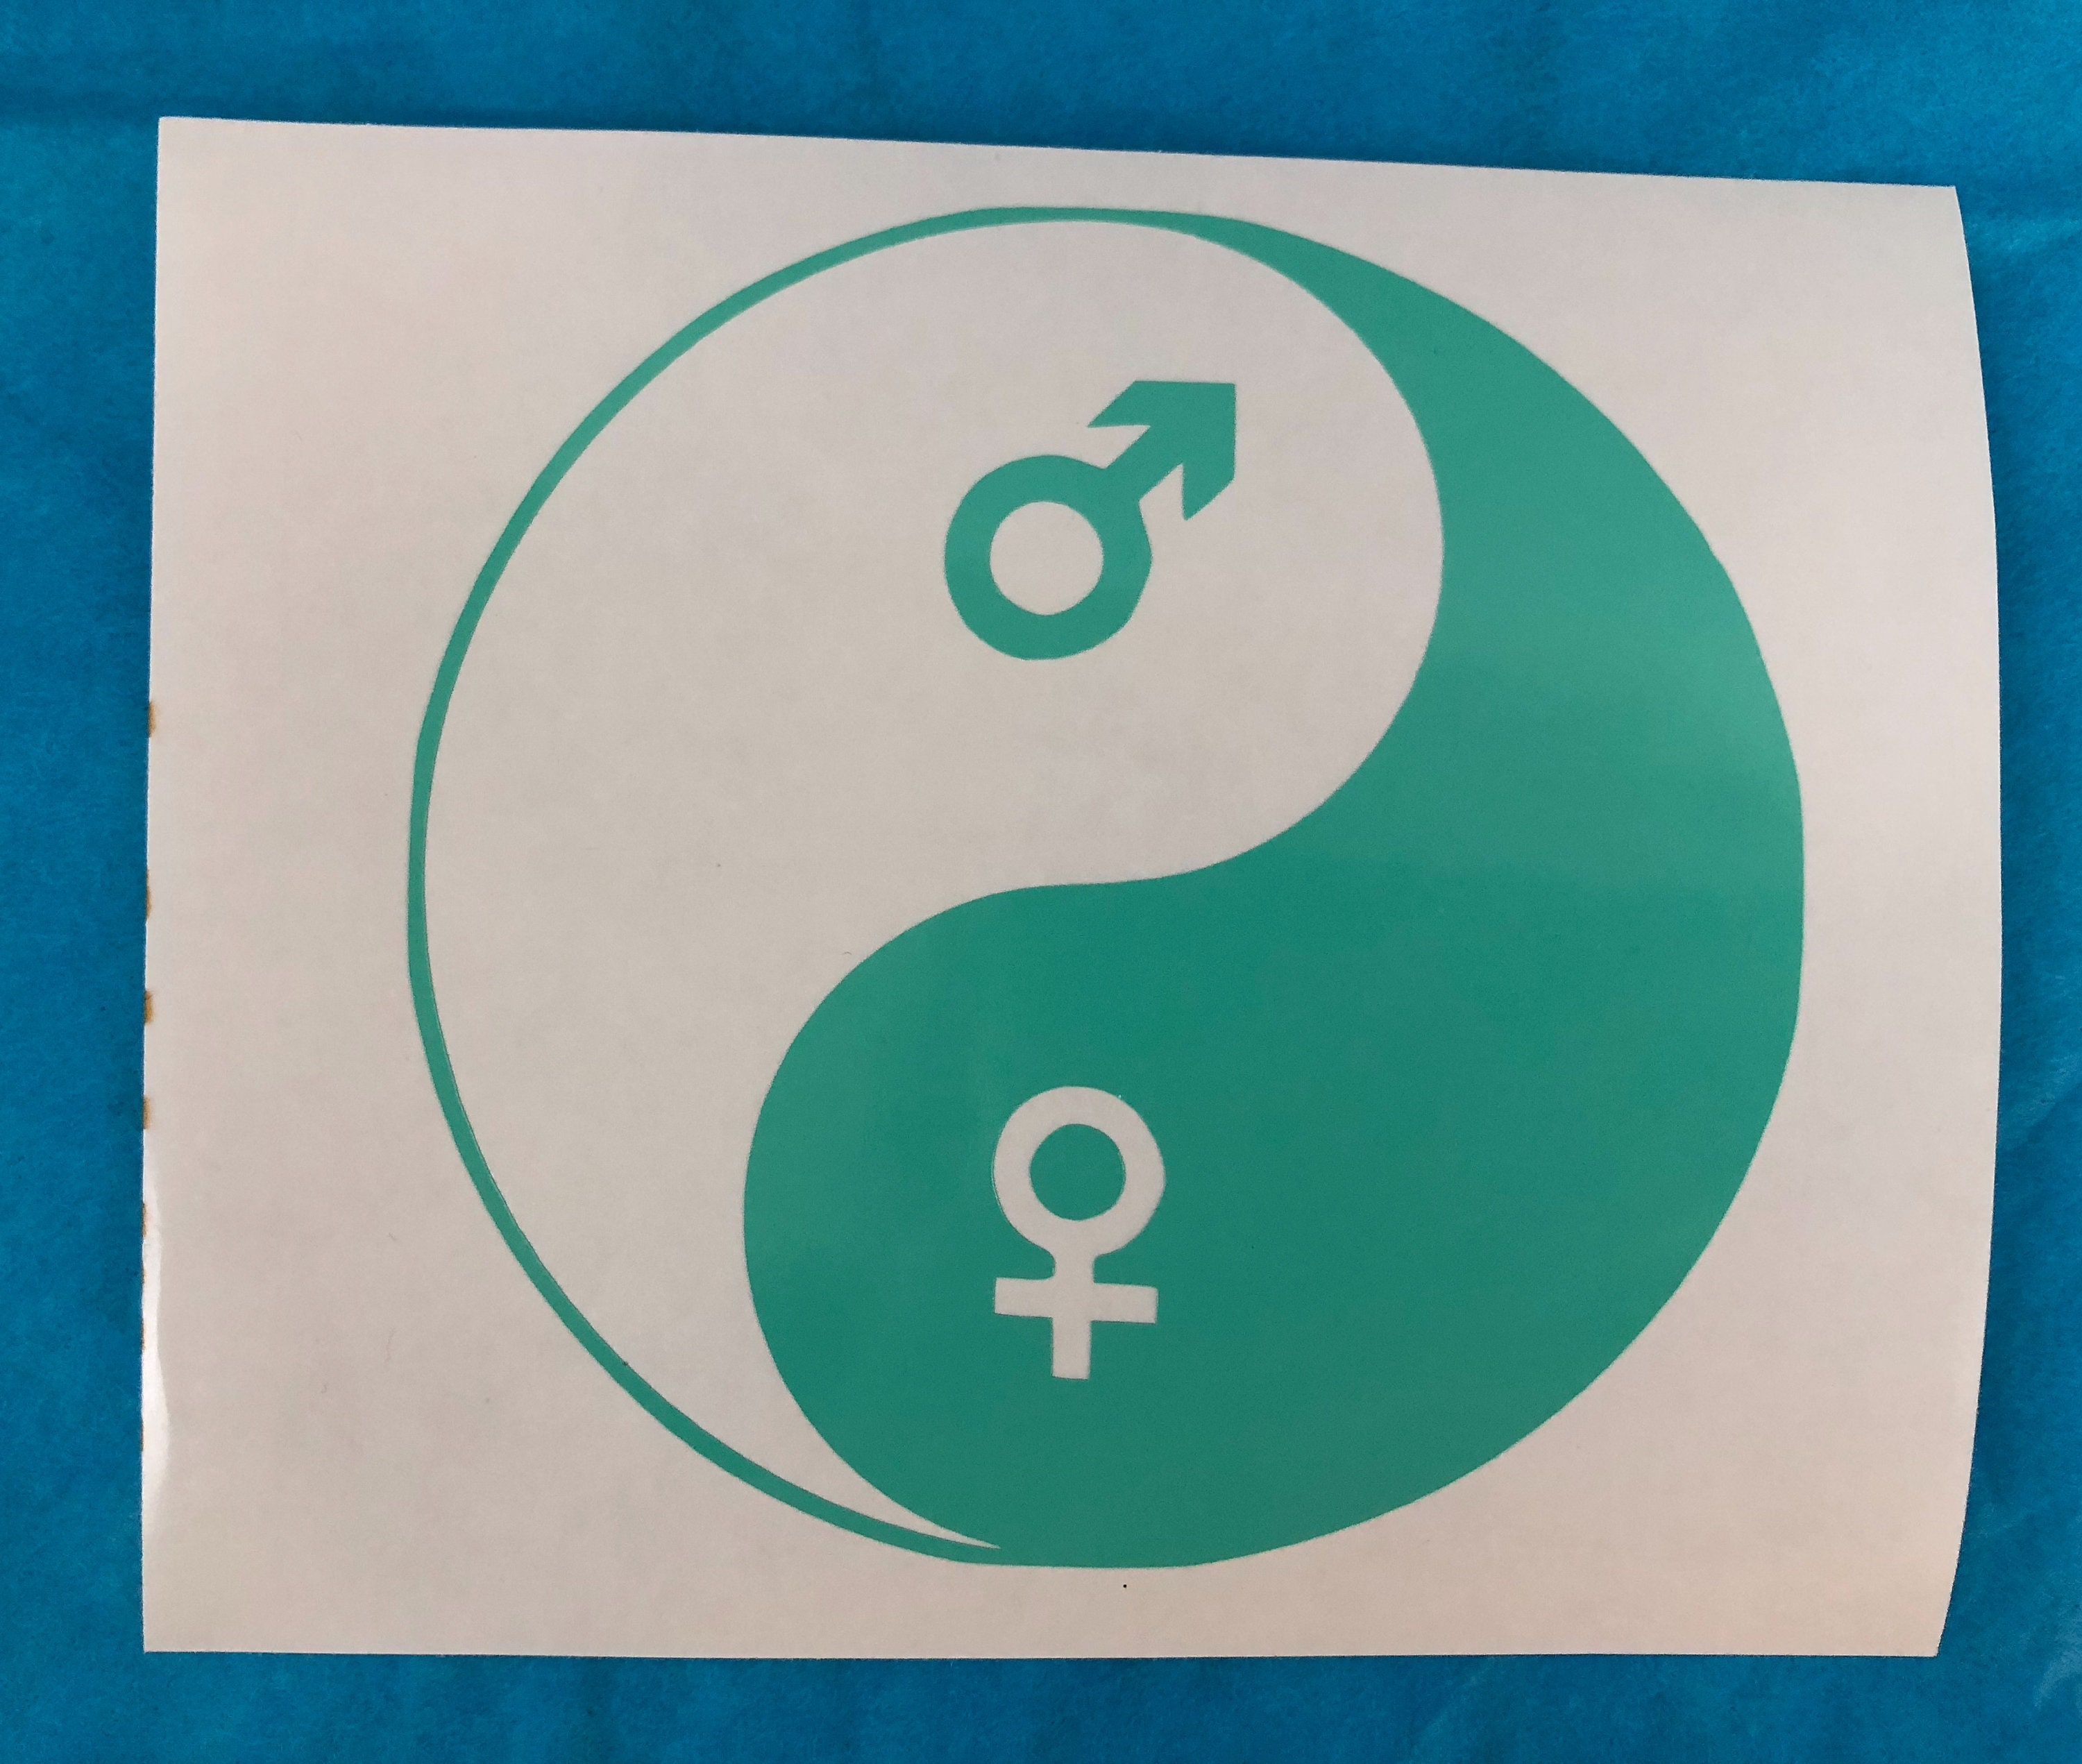 Green Yin And Yang Male Female Symbols Vinyl Decal